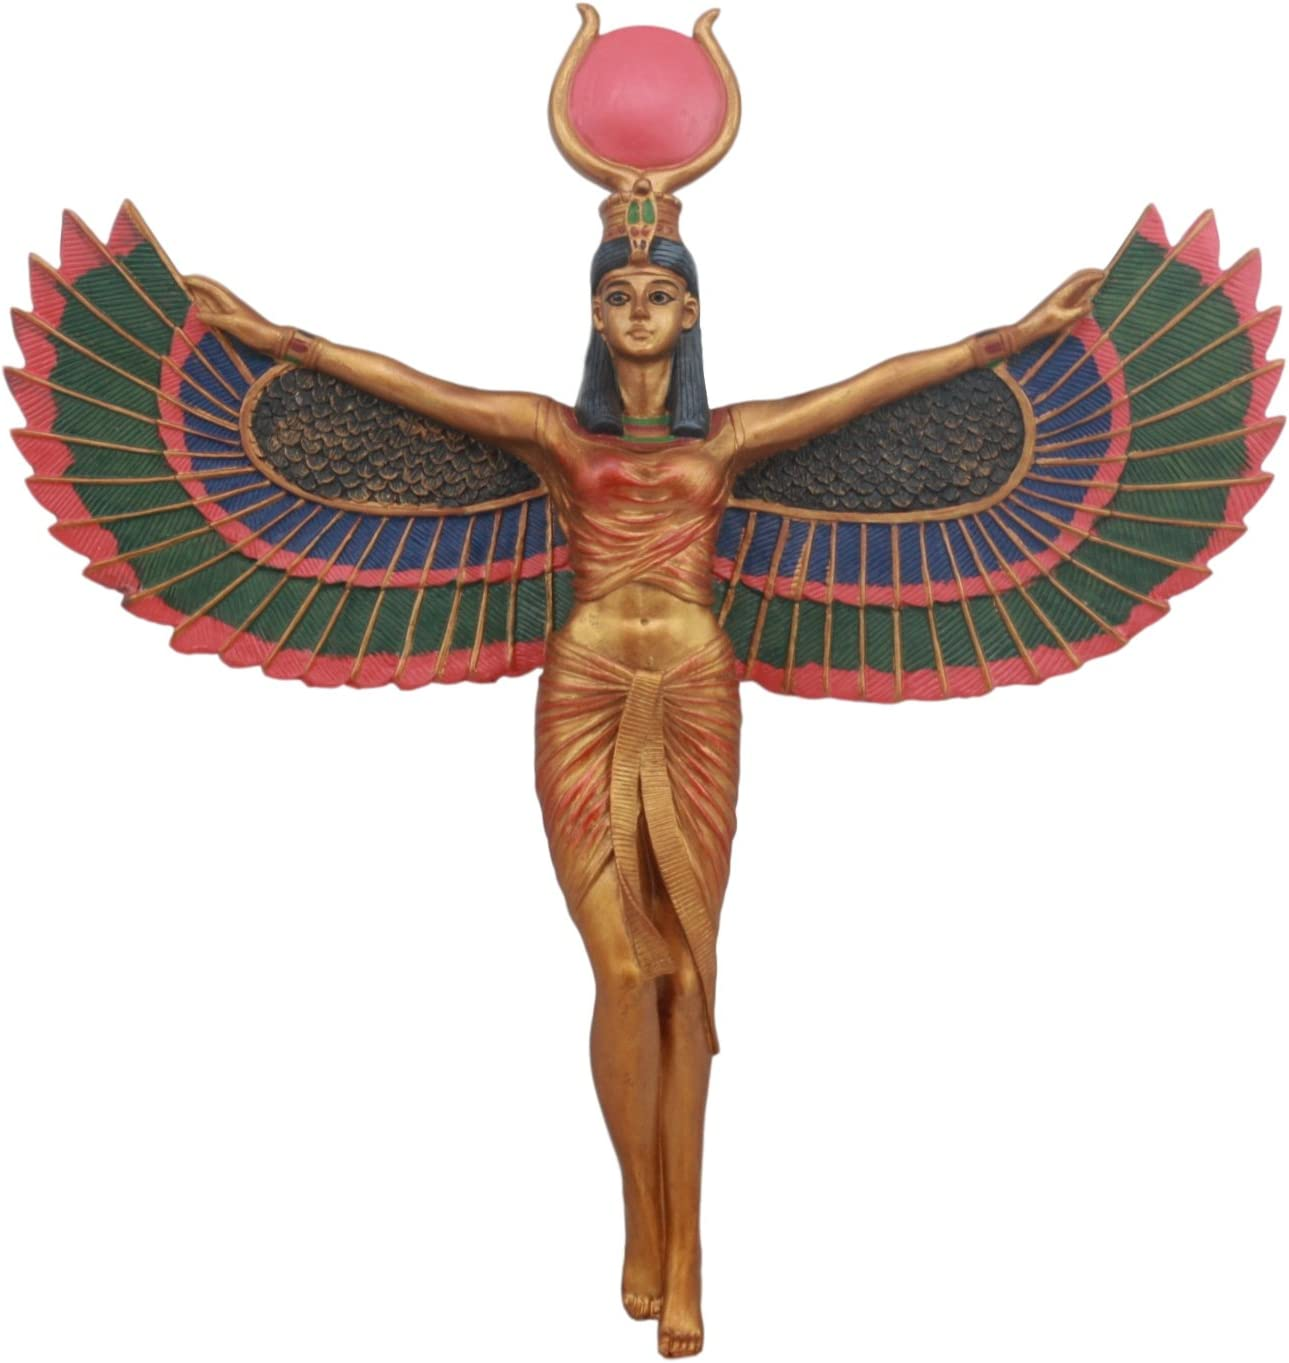 Ebros Ancient Egyptian Goddess Isis With Open Wings Wall Decor Isis Ra Deity Wall Hanging Plaque 11.5 Tall Figurine